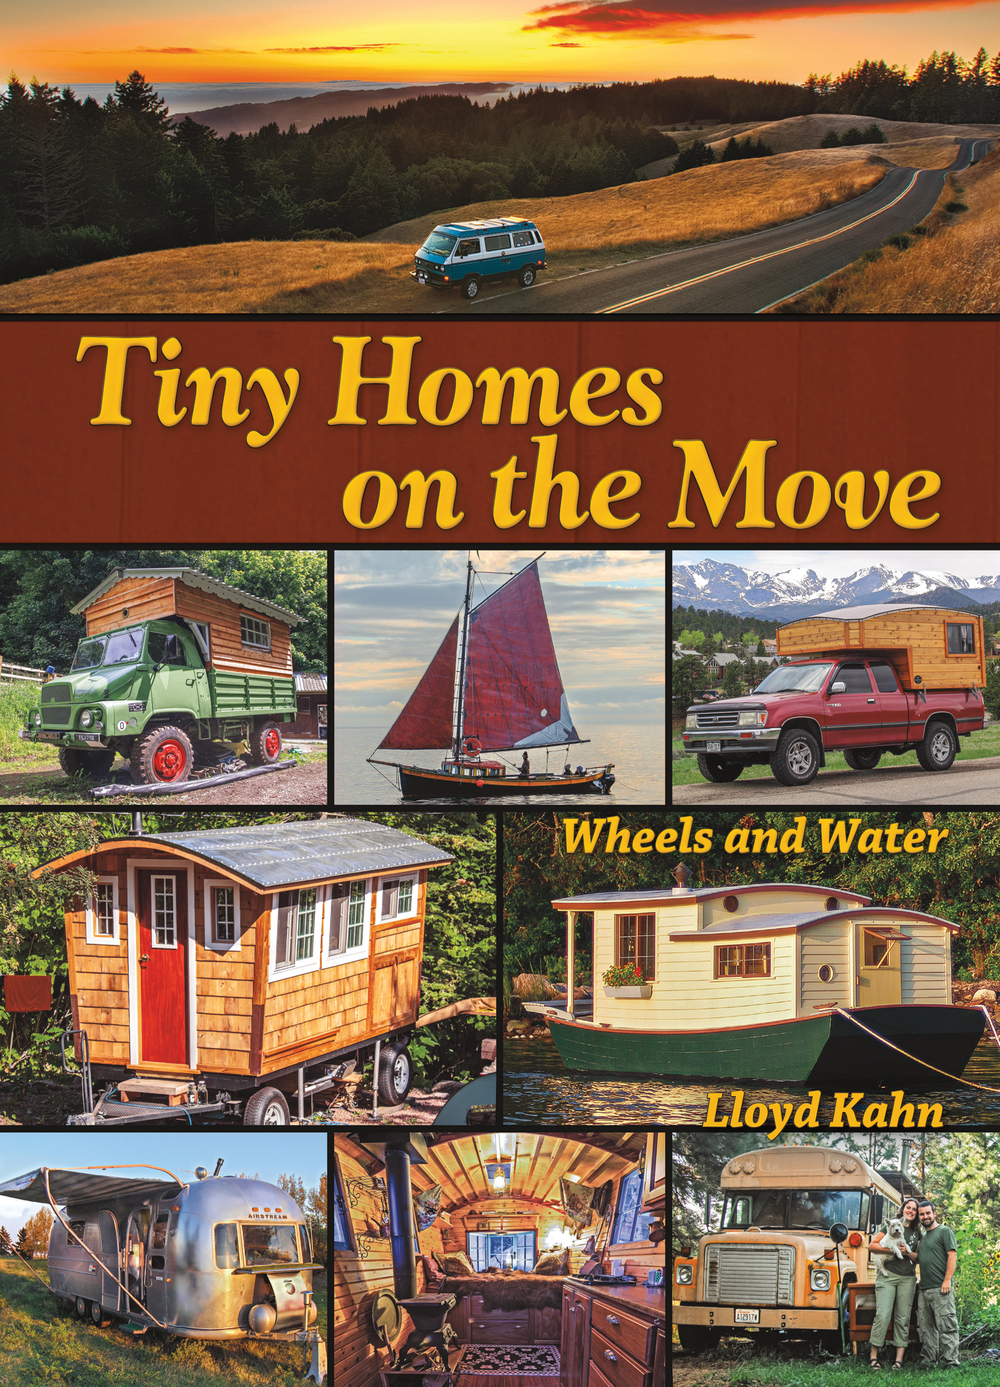 Our new book about house trucks, campers, road rigs, handmade trailers, houseboats, sailboats, and small mobile living.